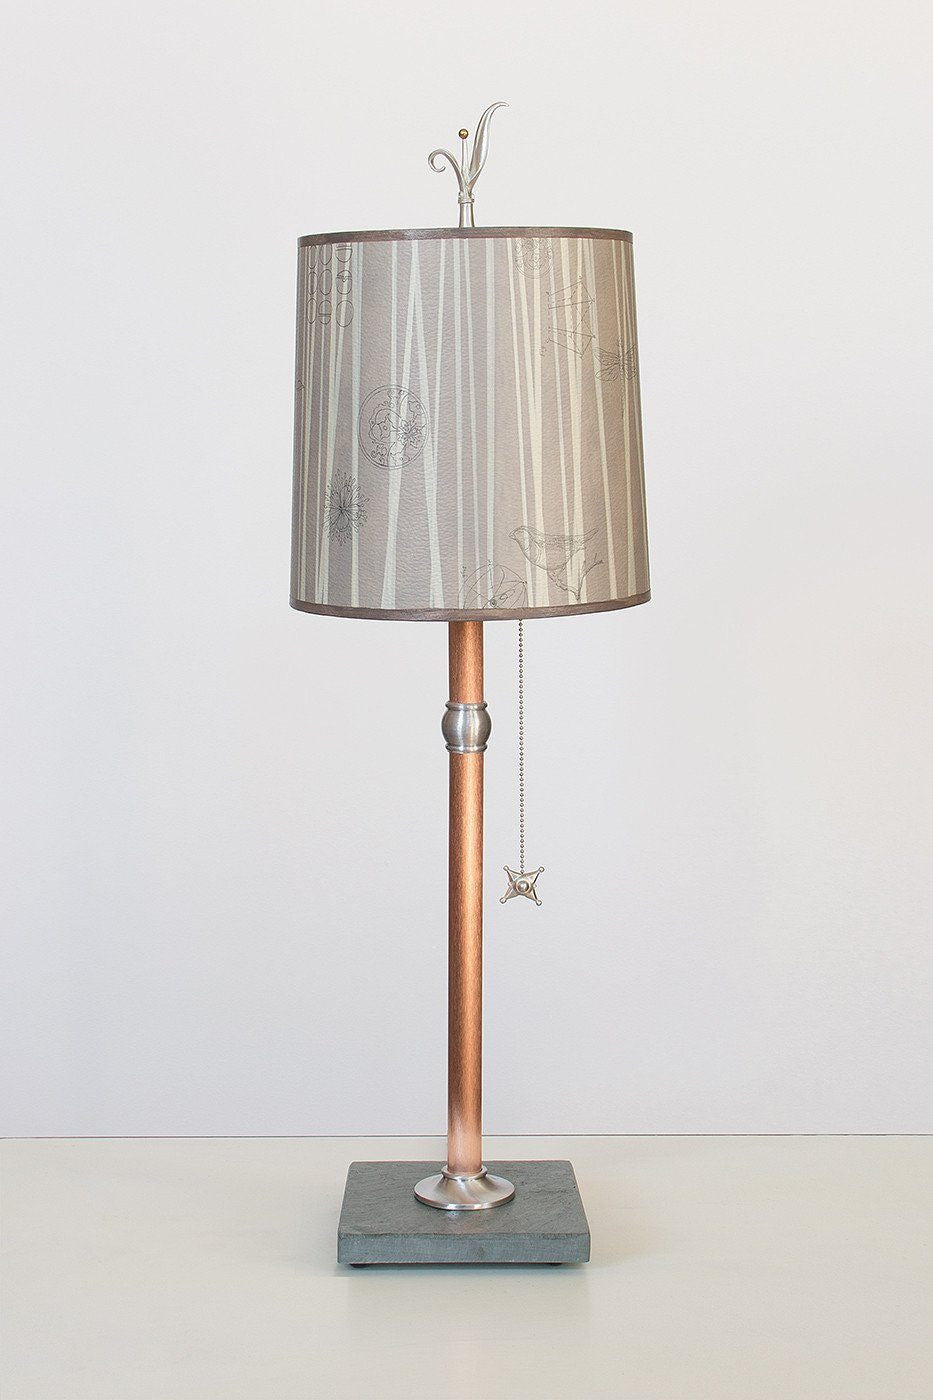 Copper Table Lamp with Medium Drum Shade in Birch